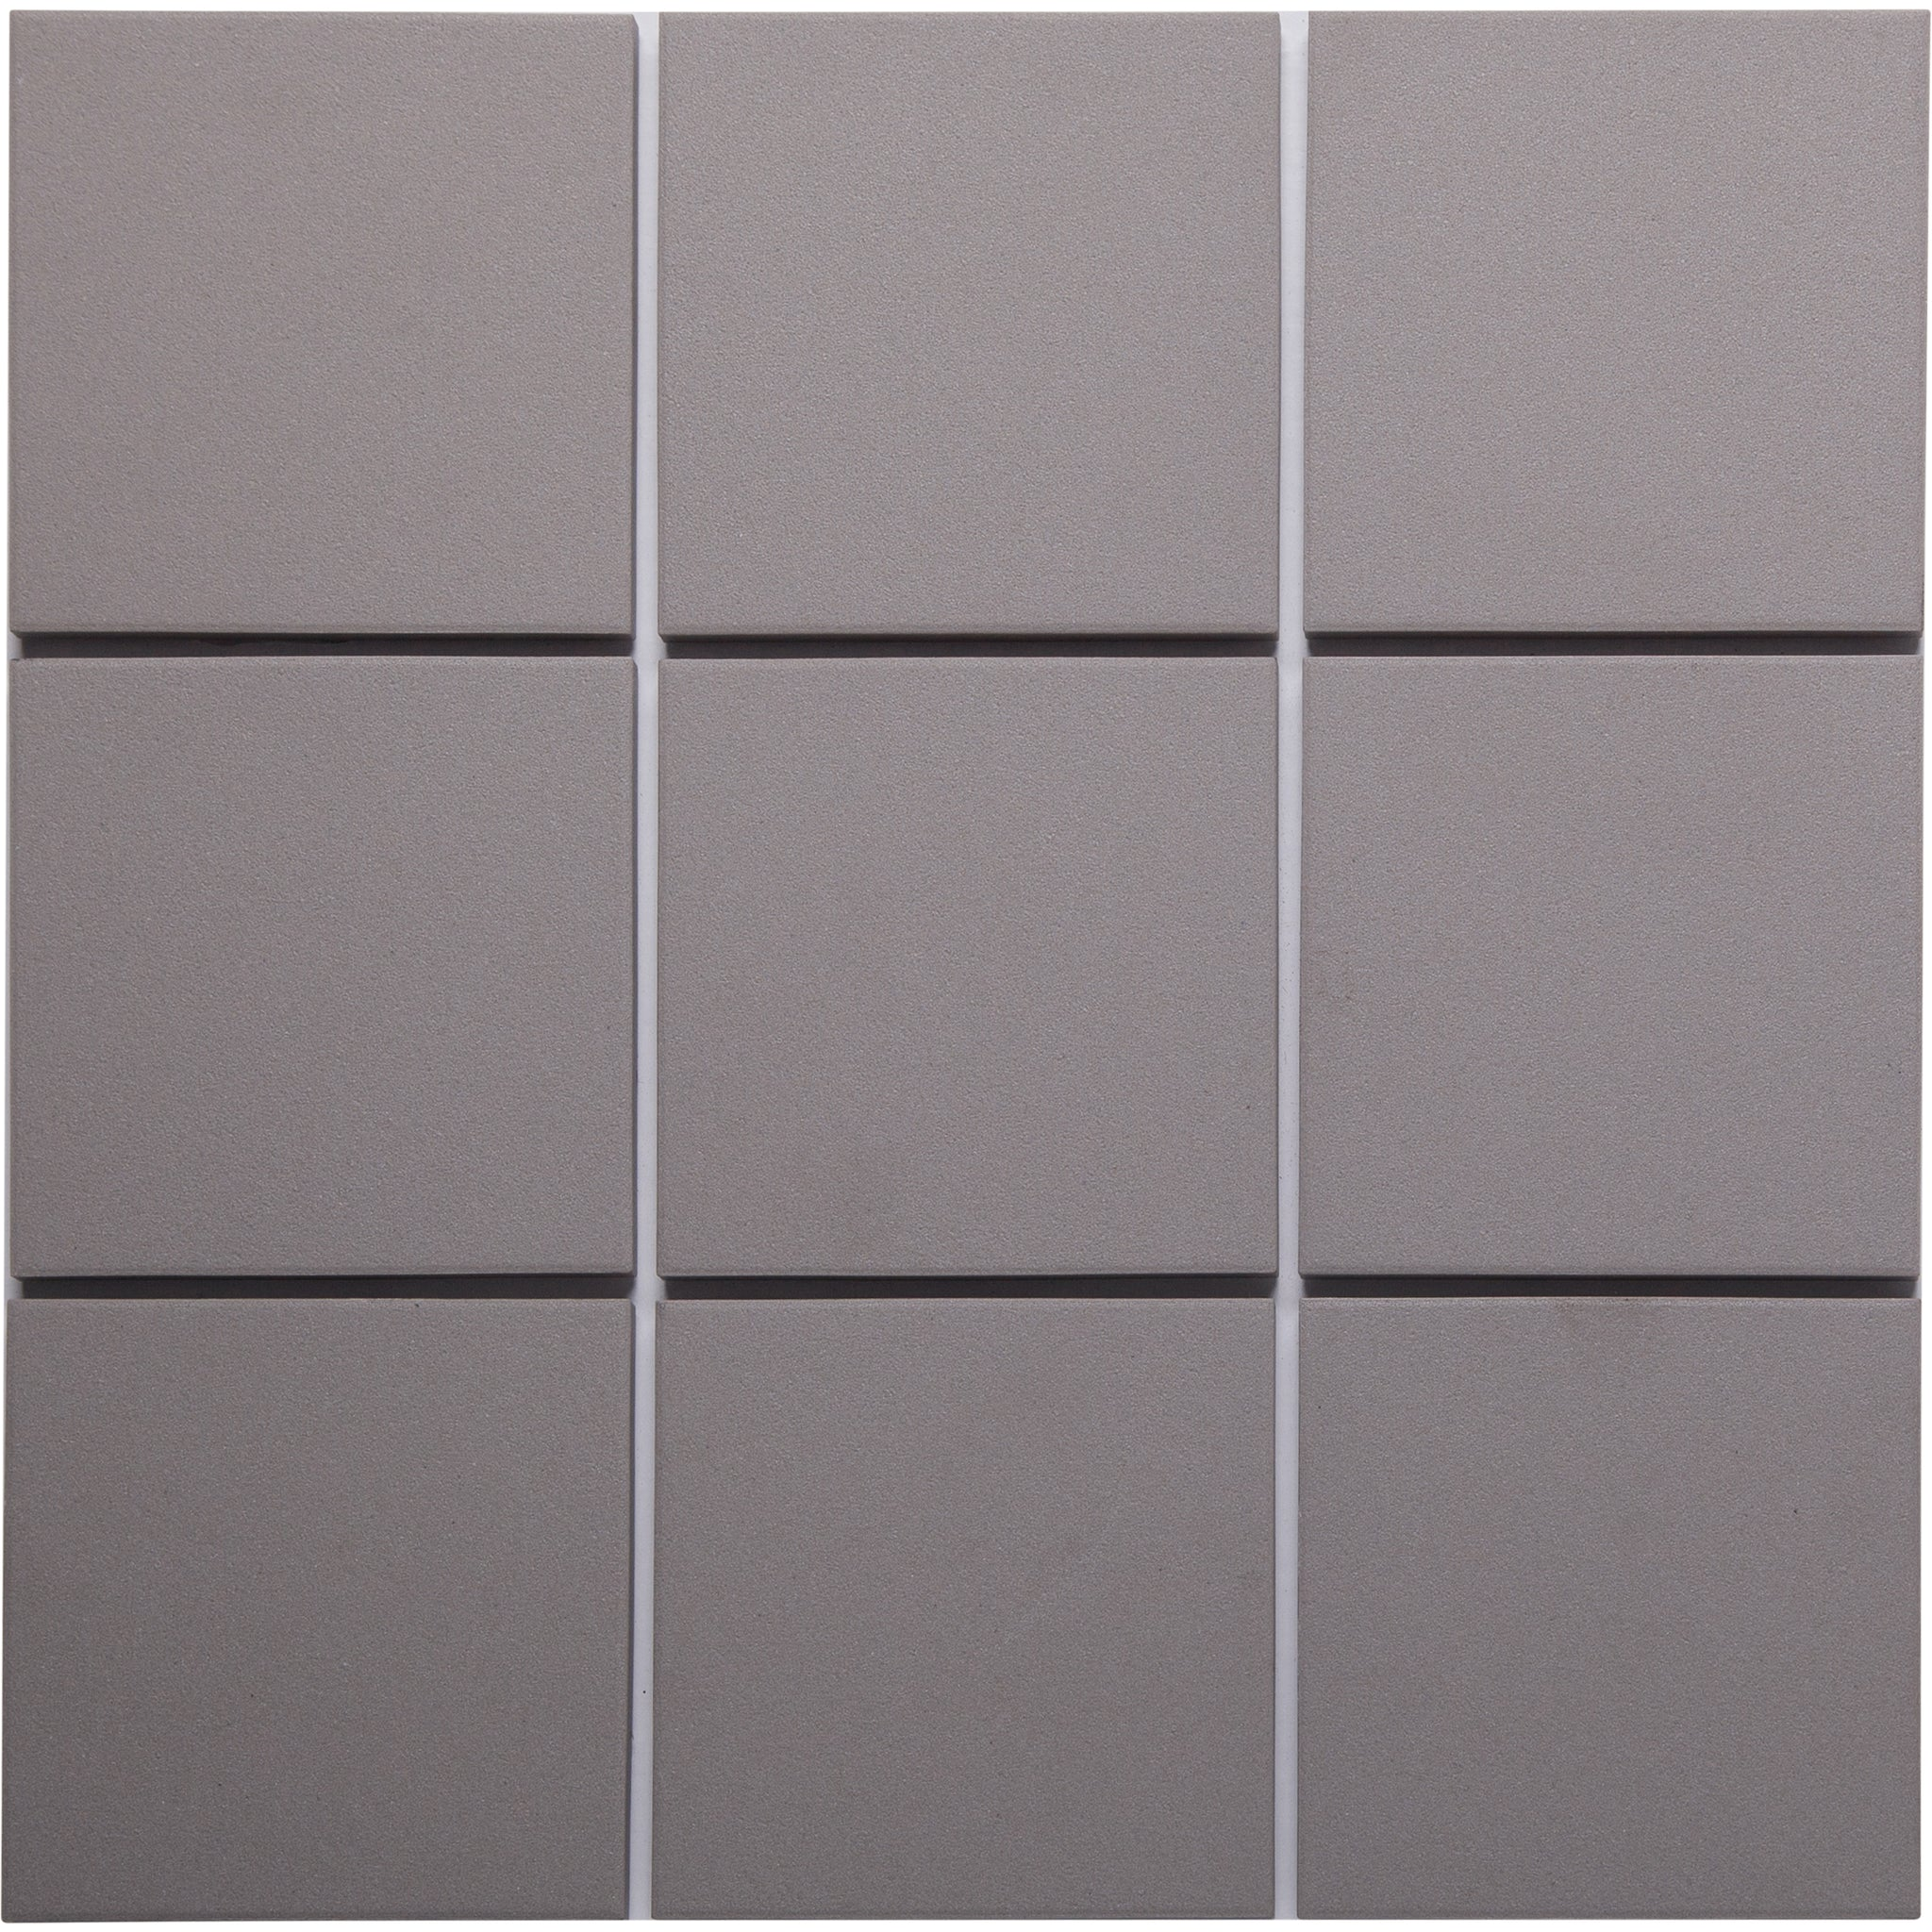 Bauhaus 907 100x100mm Unglazed Matt Wall & Floor Tile